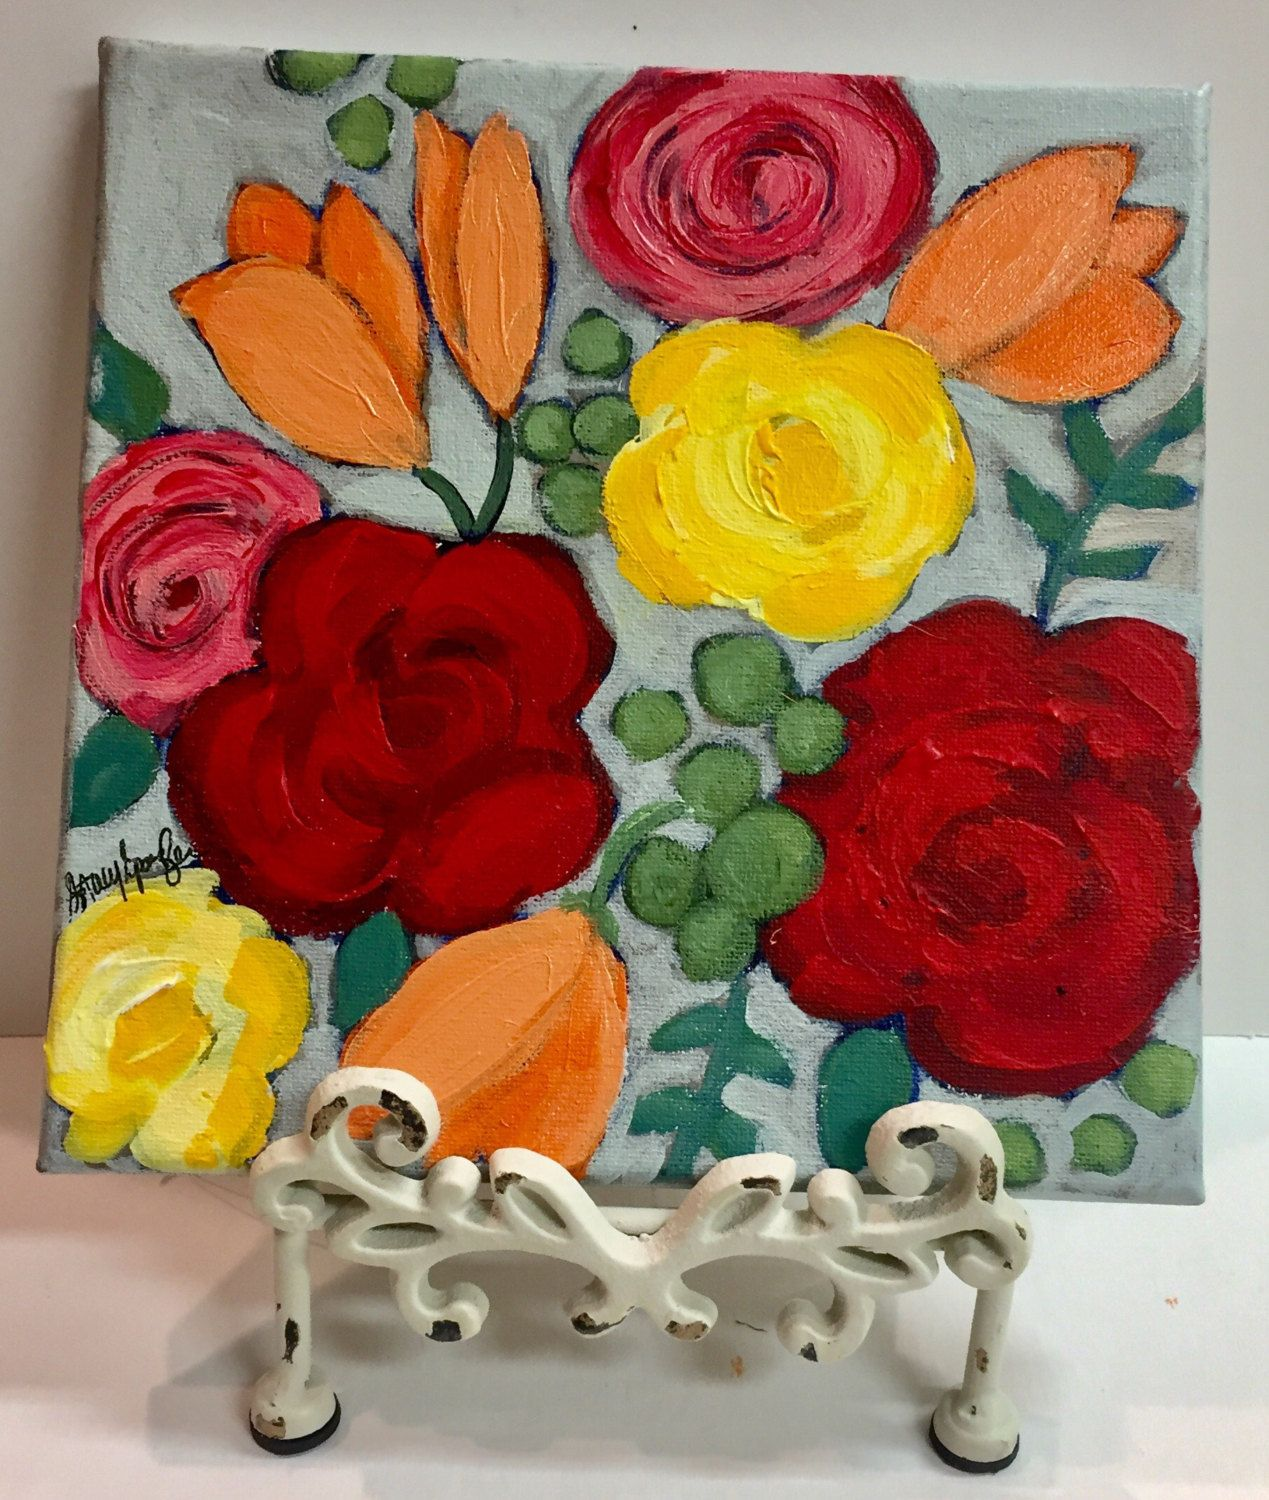 Colorful flower painting by stacyspanglerart on Etsy   Stacy ...